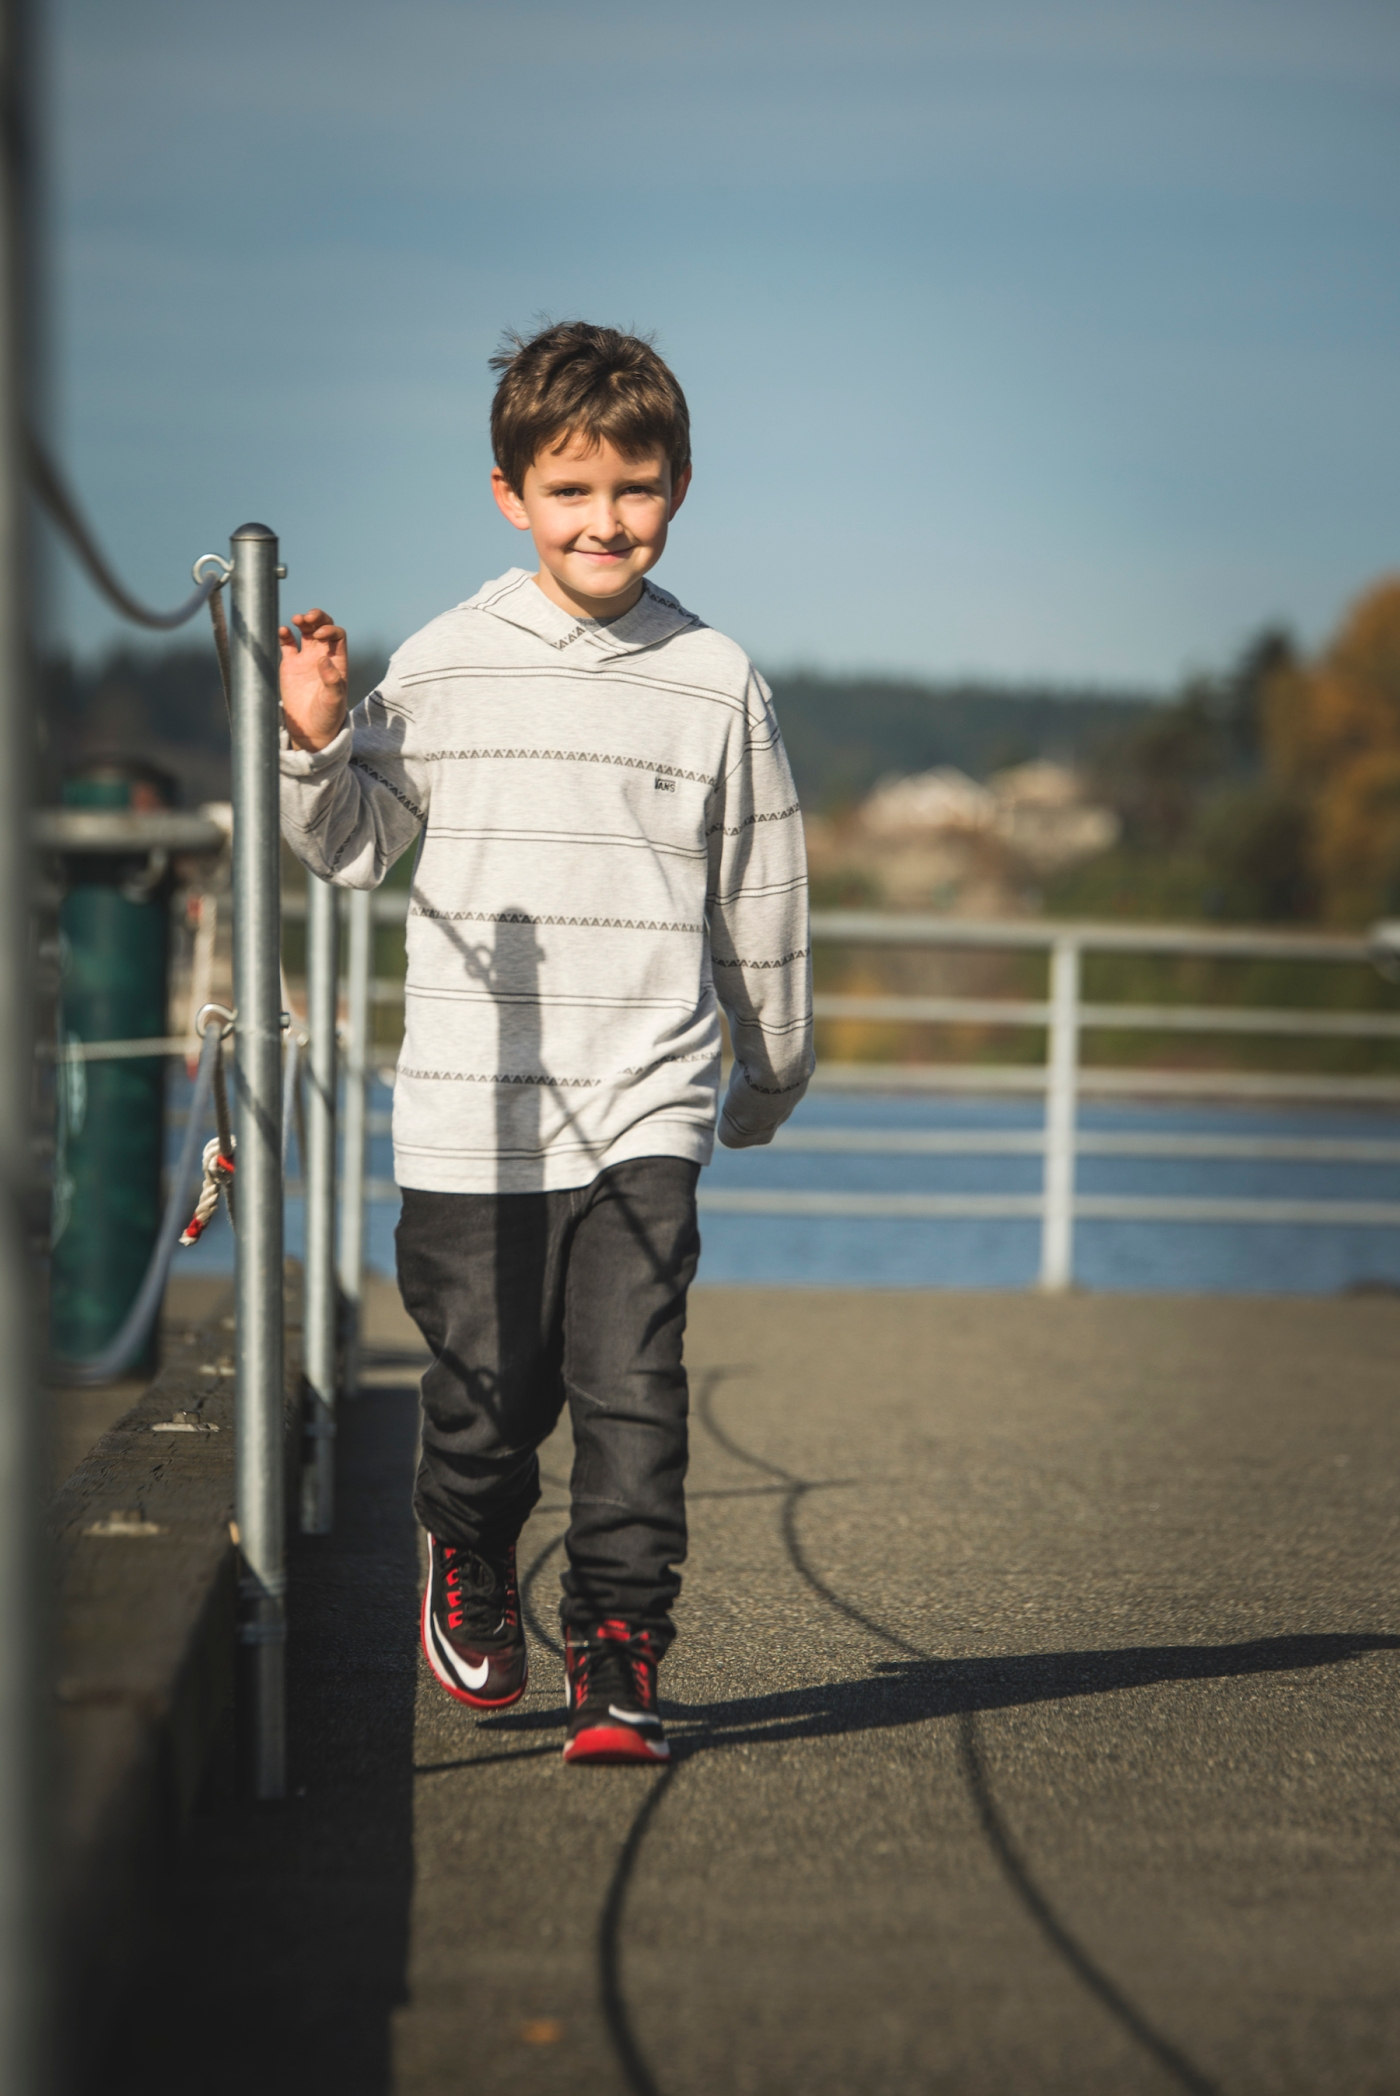 janes_photography_2016_coulon_park_renton_family_session_spencer8115